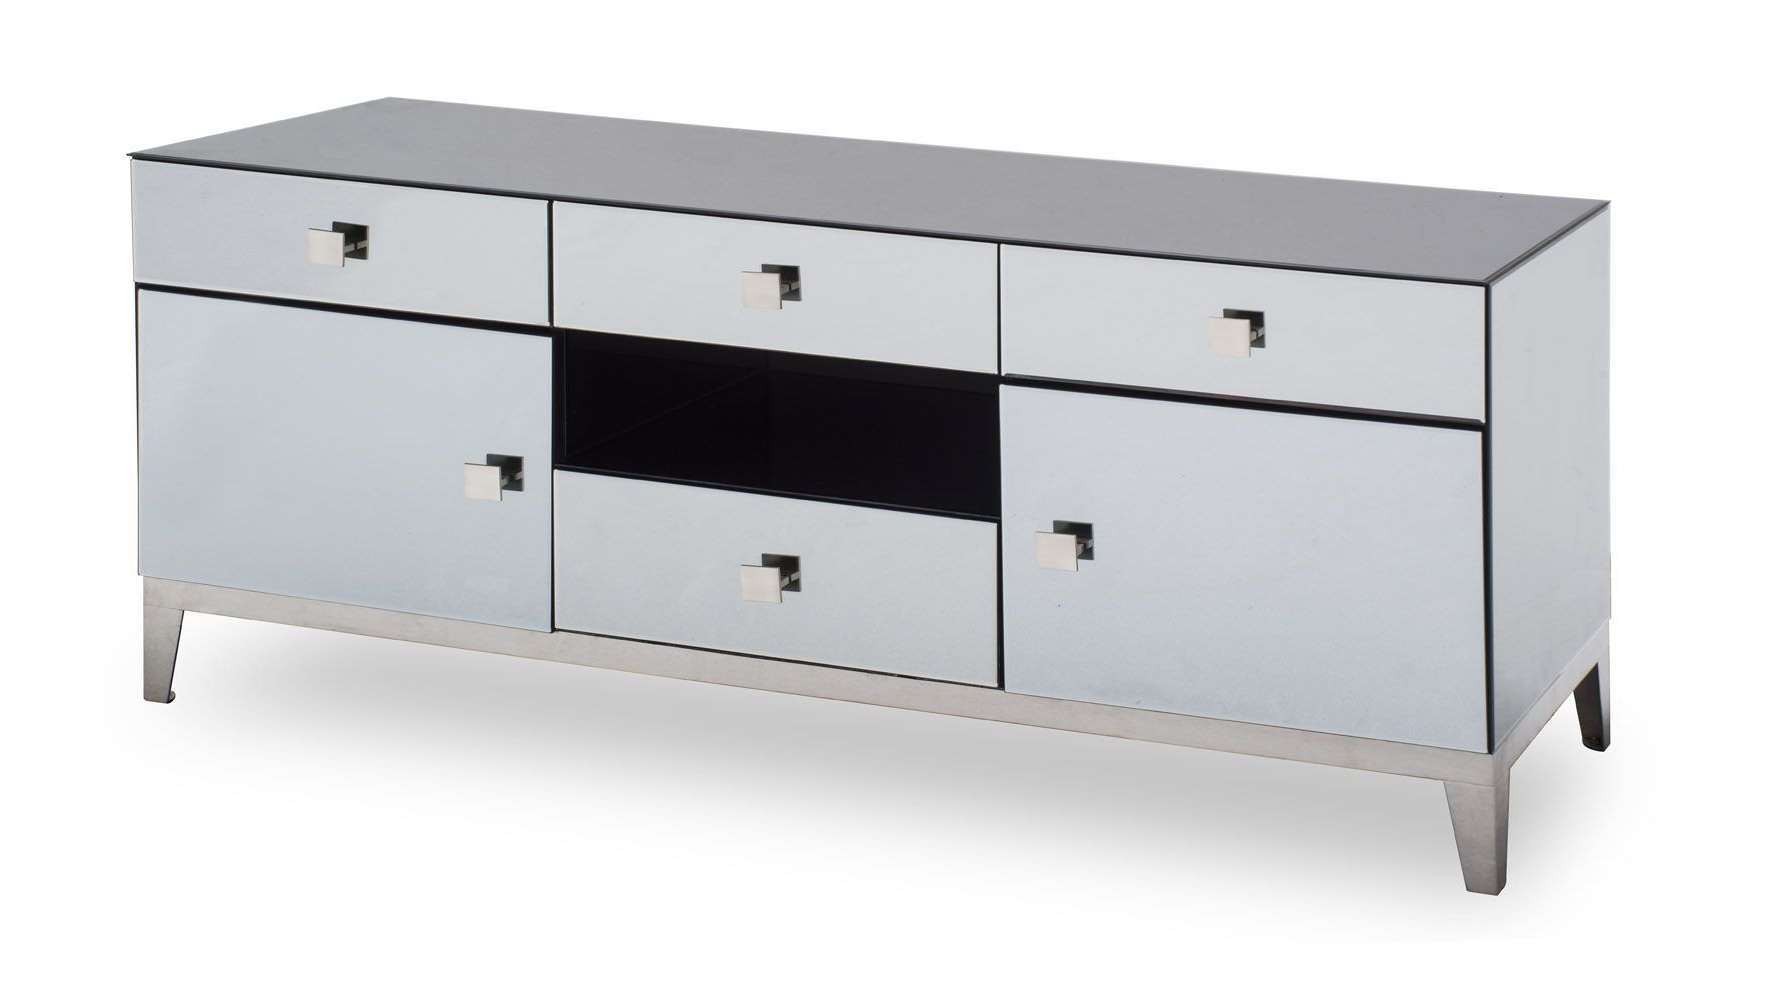 Modern Grey Mirrored Glass Berlin Tv Stand | Zuri Furniture With Mirrored Tv Cabinets (View 7 of 20)